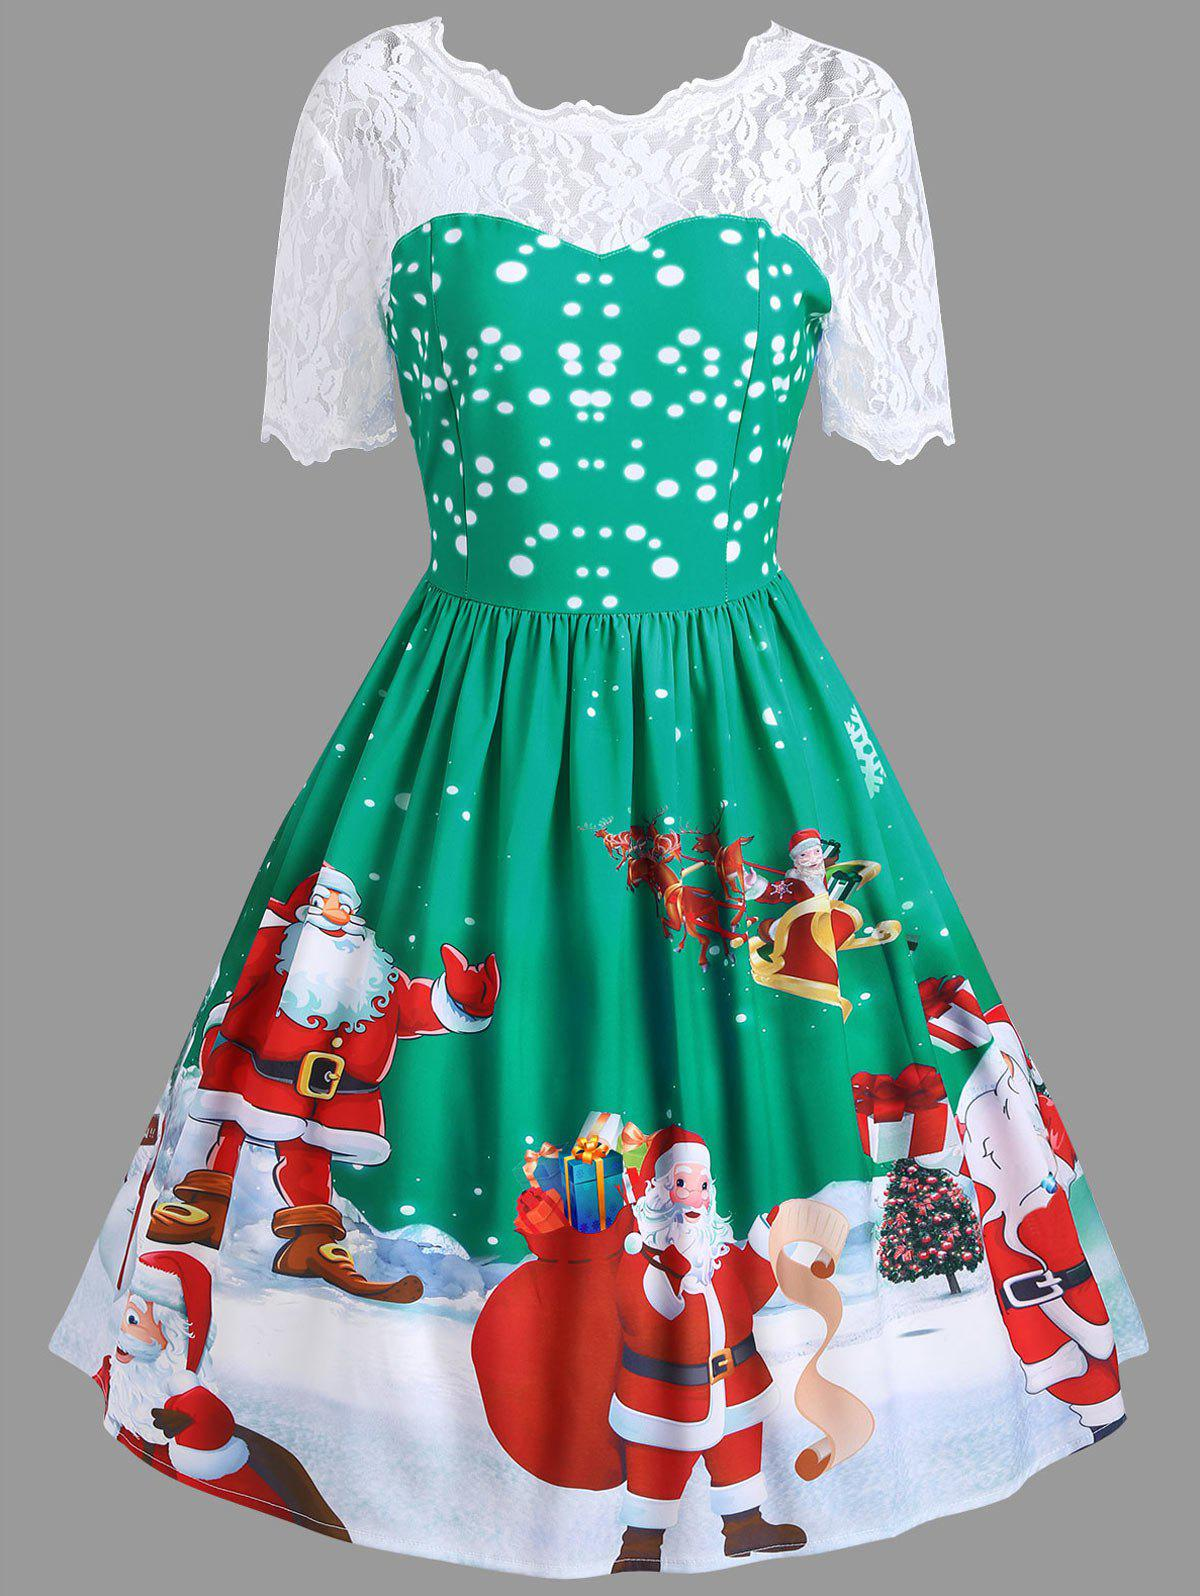 Vintage Lace Insert Santa Claus Print Christmas DressWOMEN<br><br>Size: XL; Color: GREEN; Style: Vintage; Material: Polyester,Spandex; Silhouette: A-Line; Dresses Length: Knee-Length; Neckline: Round Collar; Sleeve Length: Short Sleeves; Pattern Type: Patchwork,Print; With Belt: No; Season: Fall,Spring; Weight: 0.3500kg; Package Contents: 1 x Dress;